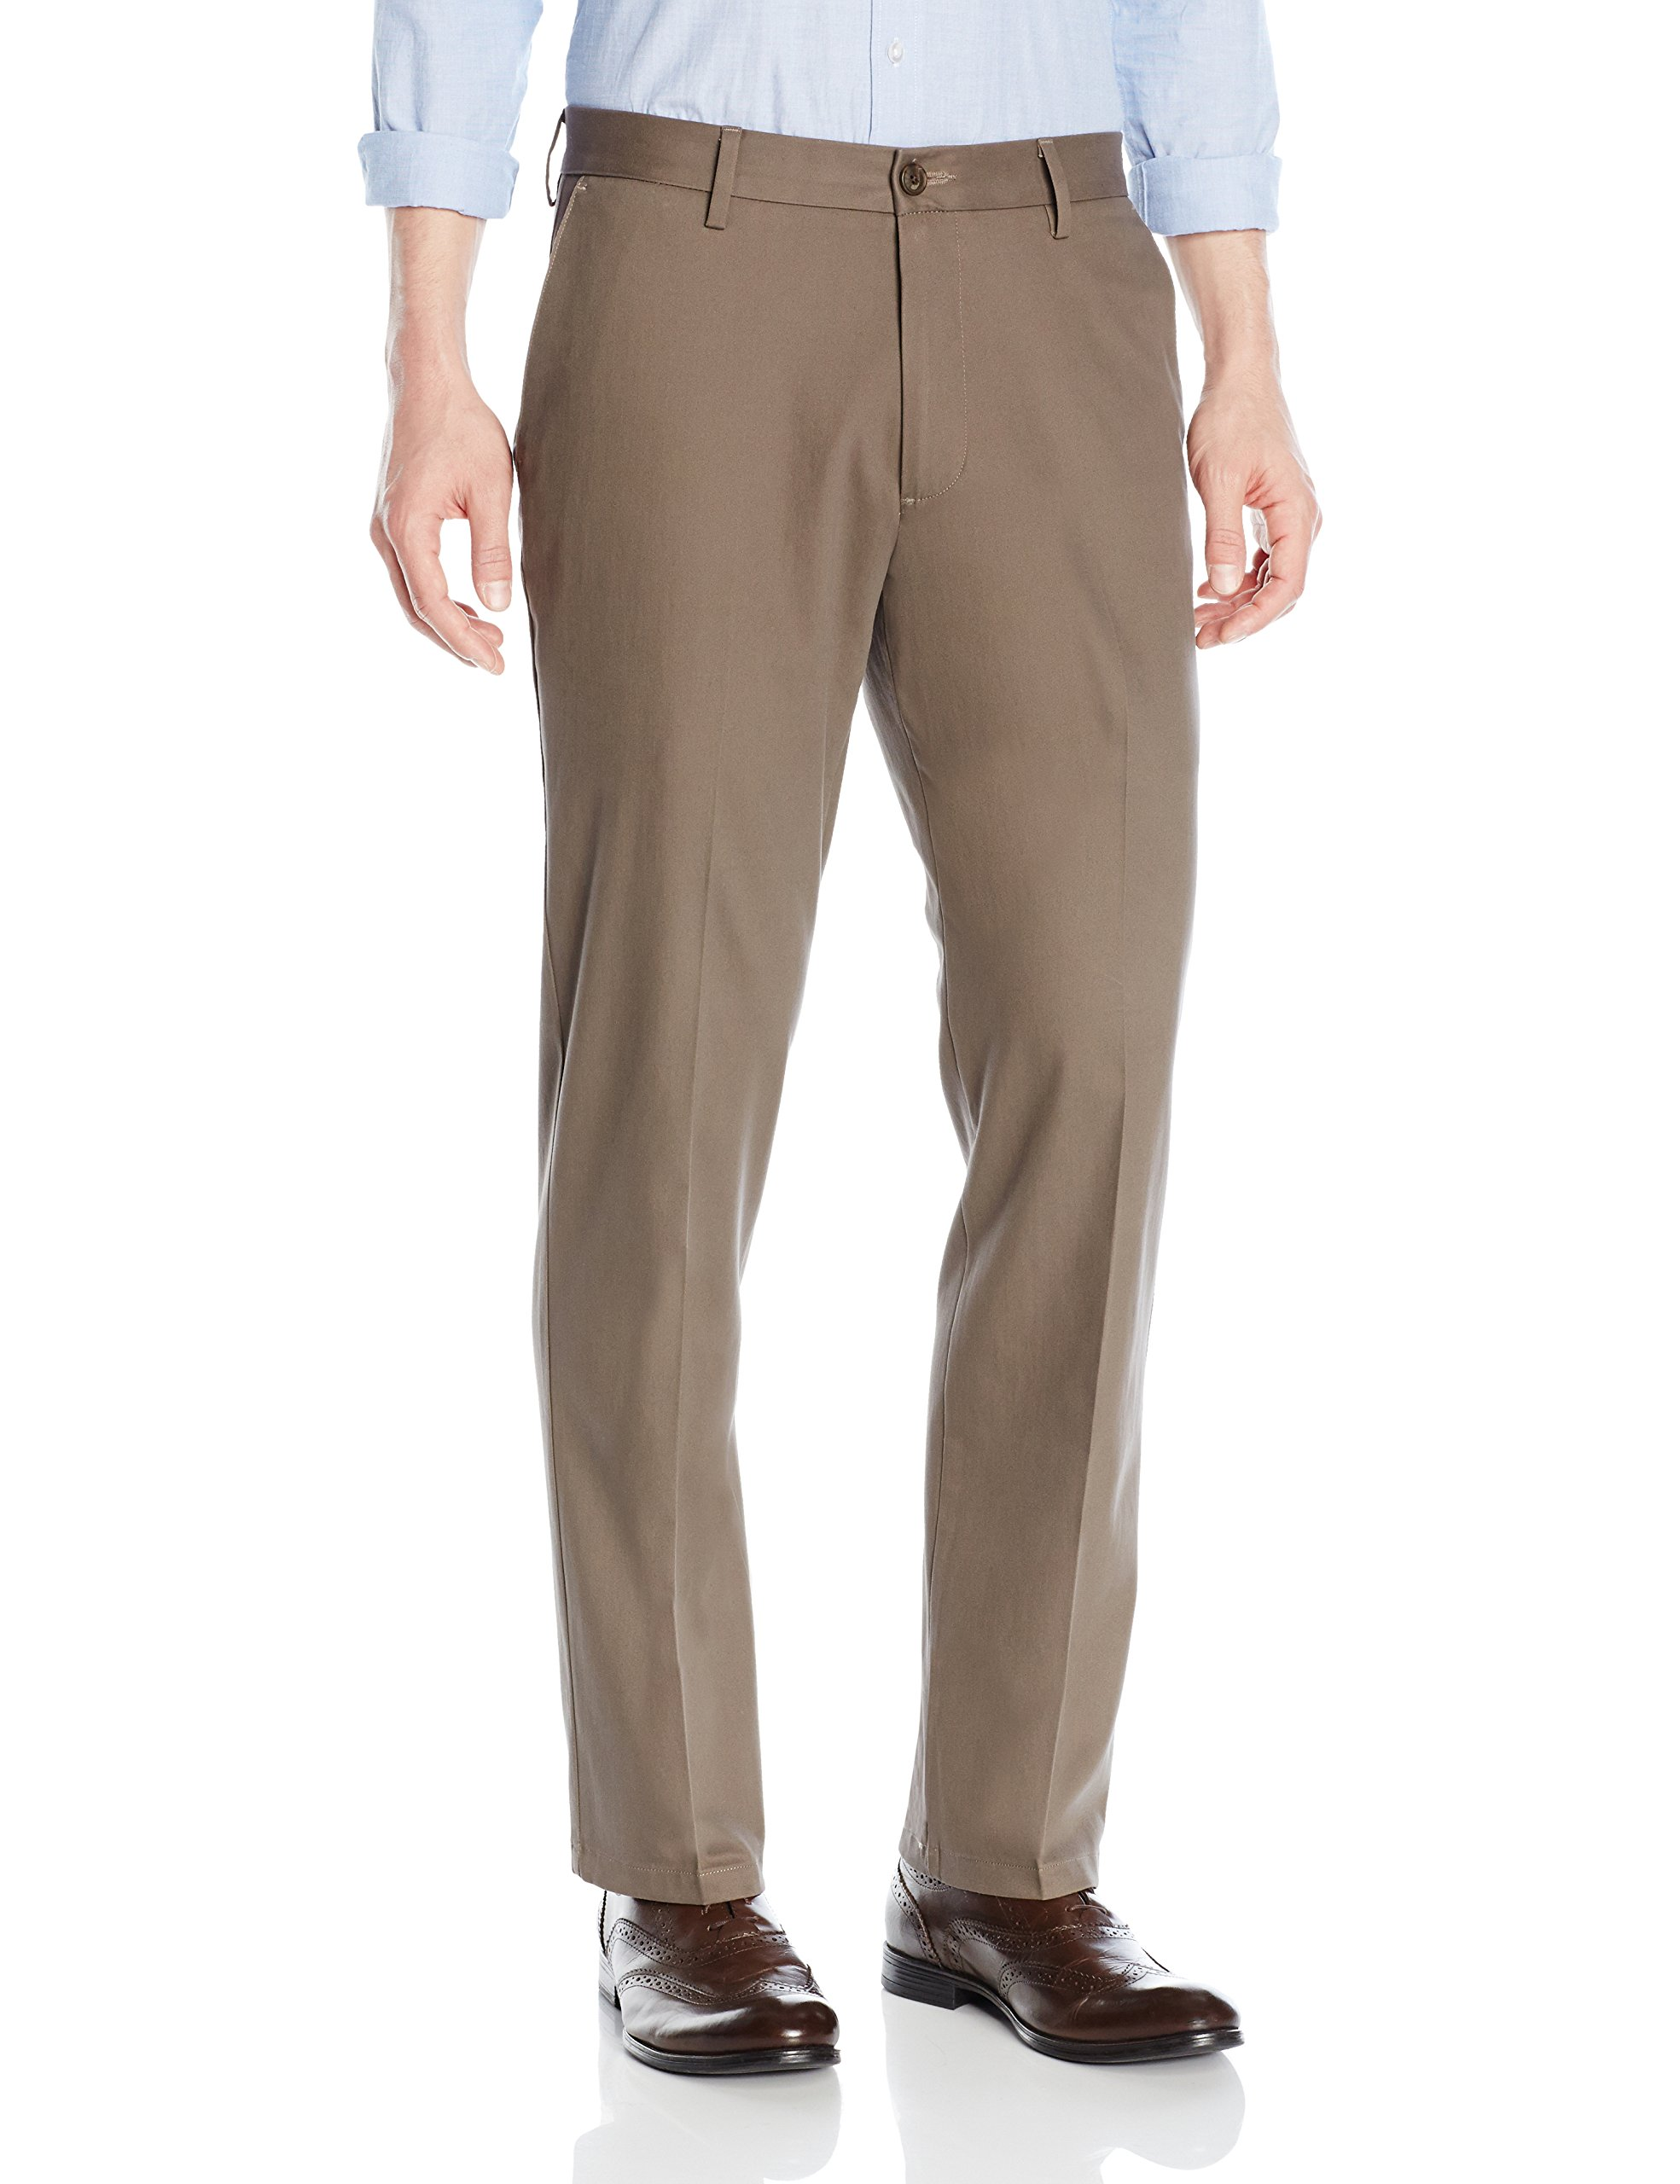 Goodthreads Men's Straight-Fit Wrinkle-Free Dress Chino Pant, Taupe, 31W x 30L